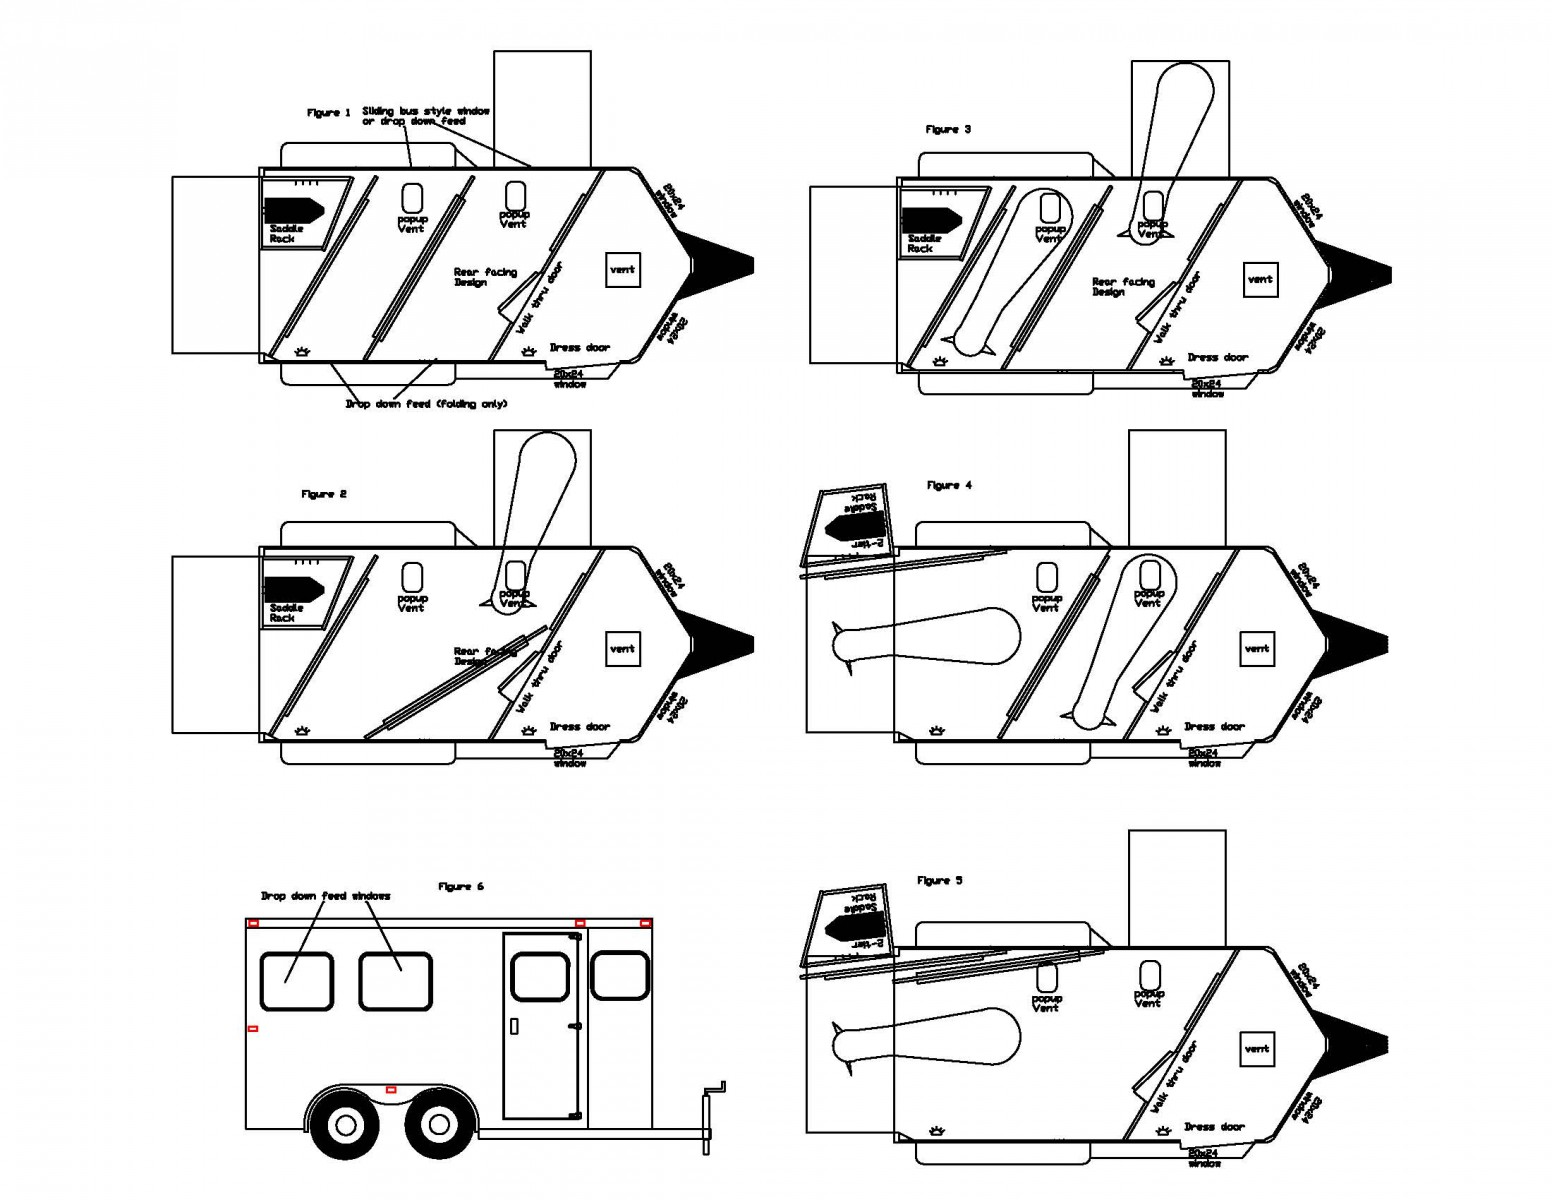 Horse Trailer Parts Diagram Great Installation Of Wiring Livestock U S Patent Awarded To Double D Trailers For Innovative Safetack Rh Doubledtrailers Com Light Plug